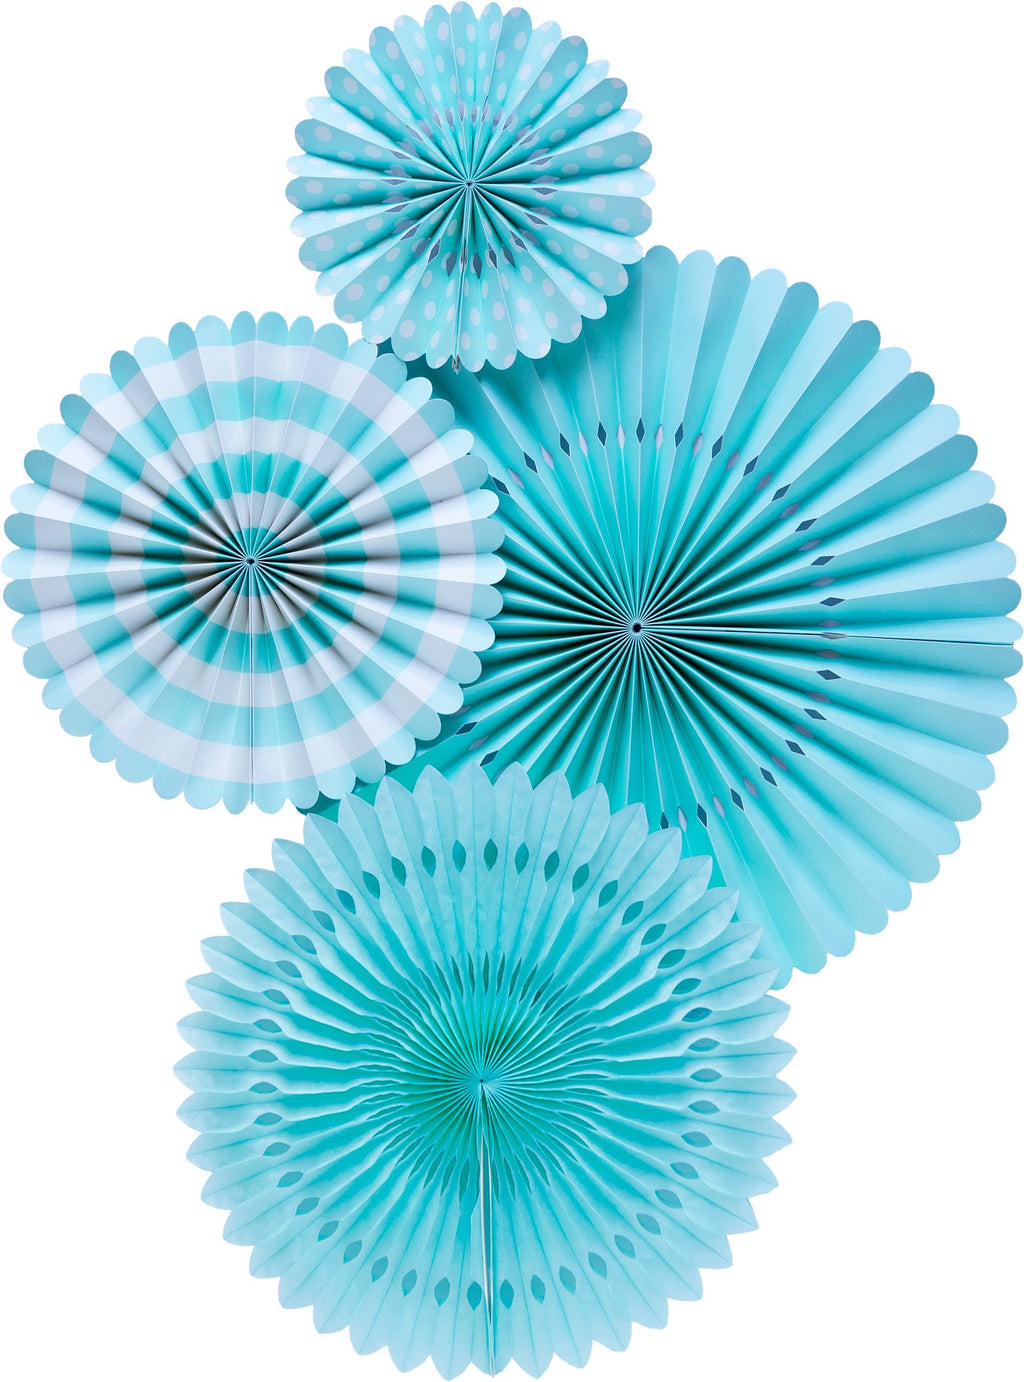 Aqua Striped and Polka Dot Paper Fan Decorations | The Party Darling